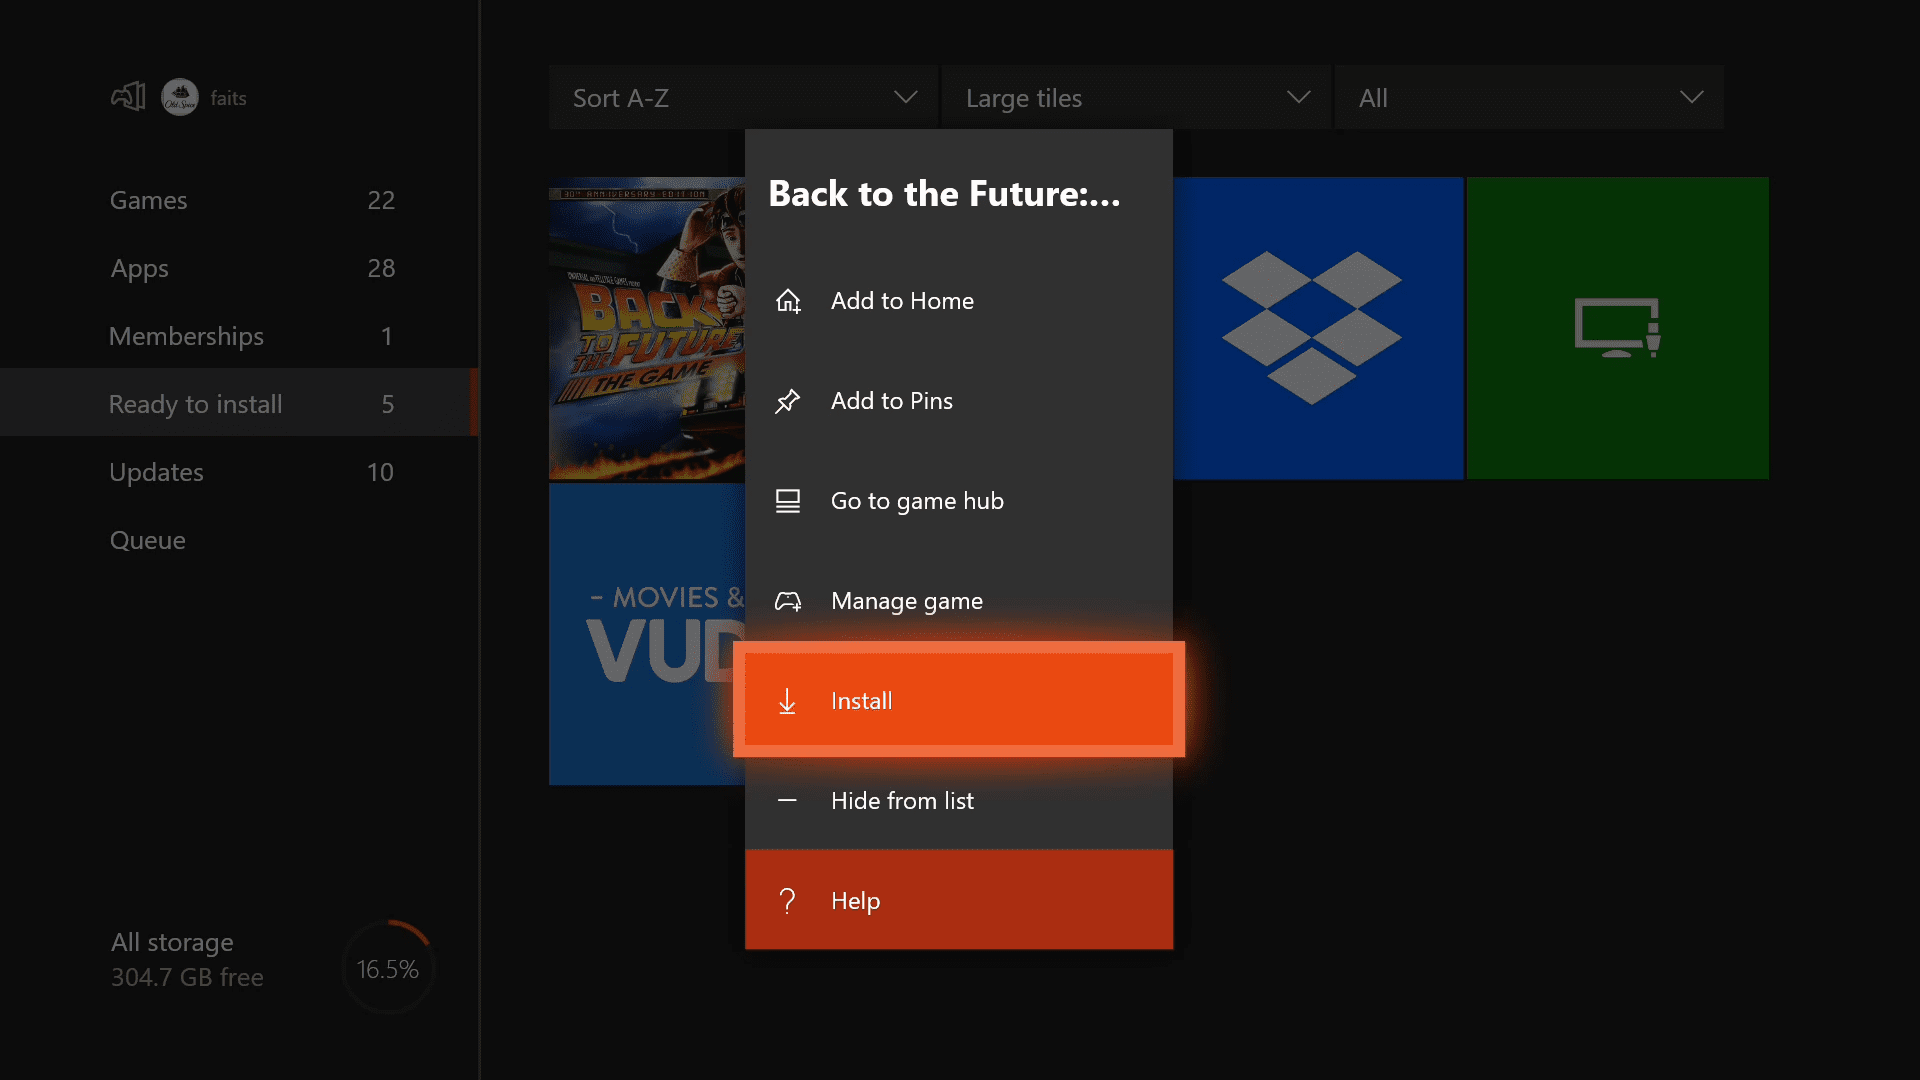 How to Uninstall a Game on Xbox One to Free Up Space